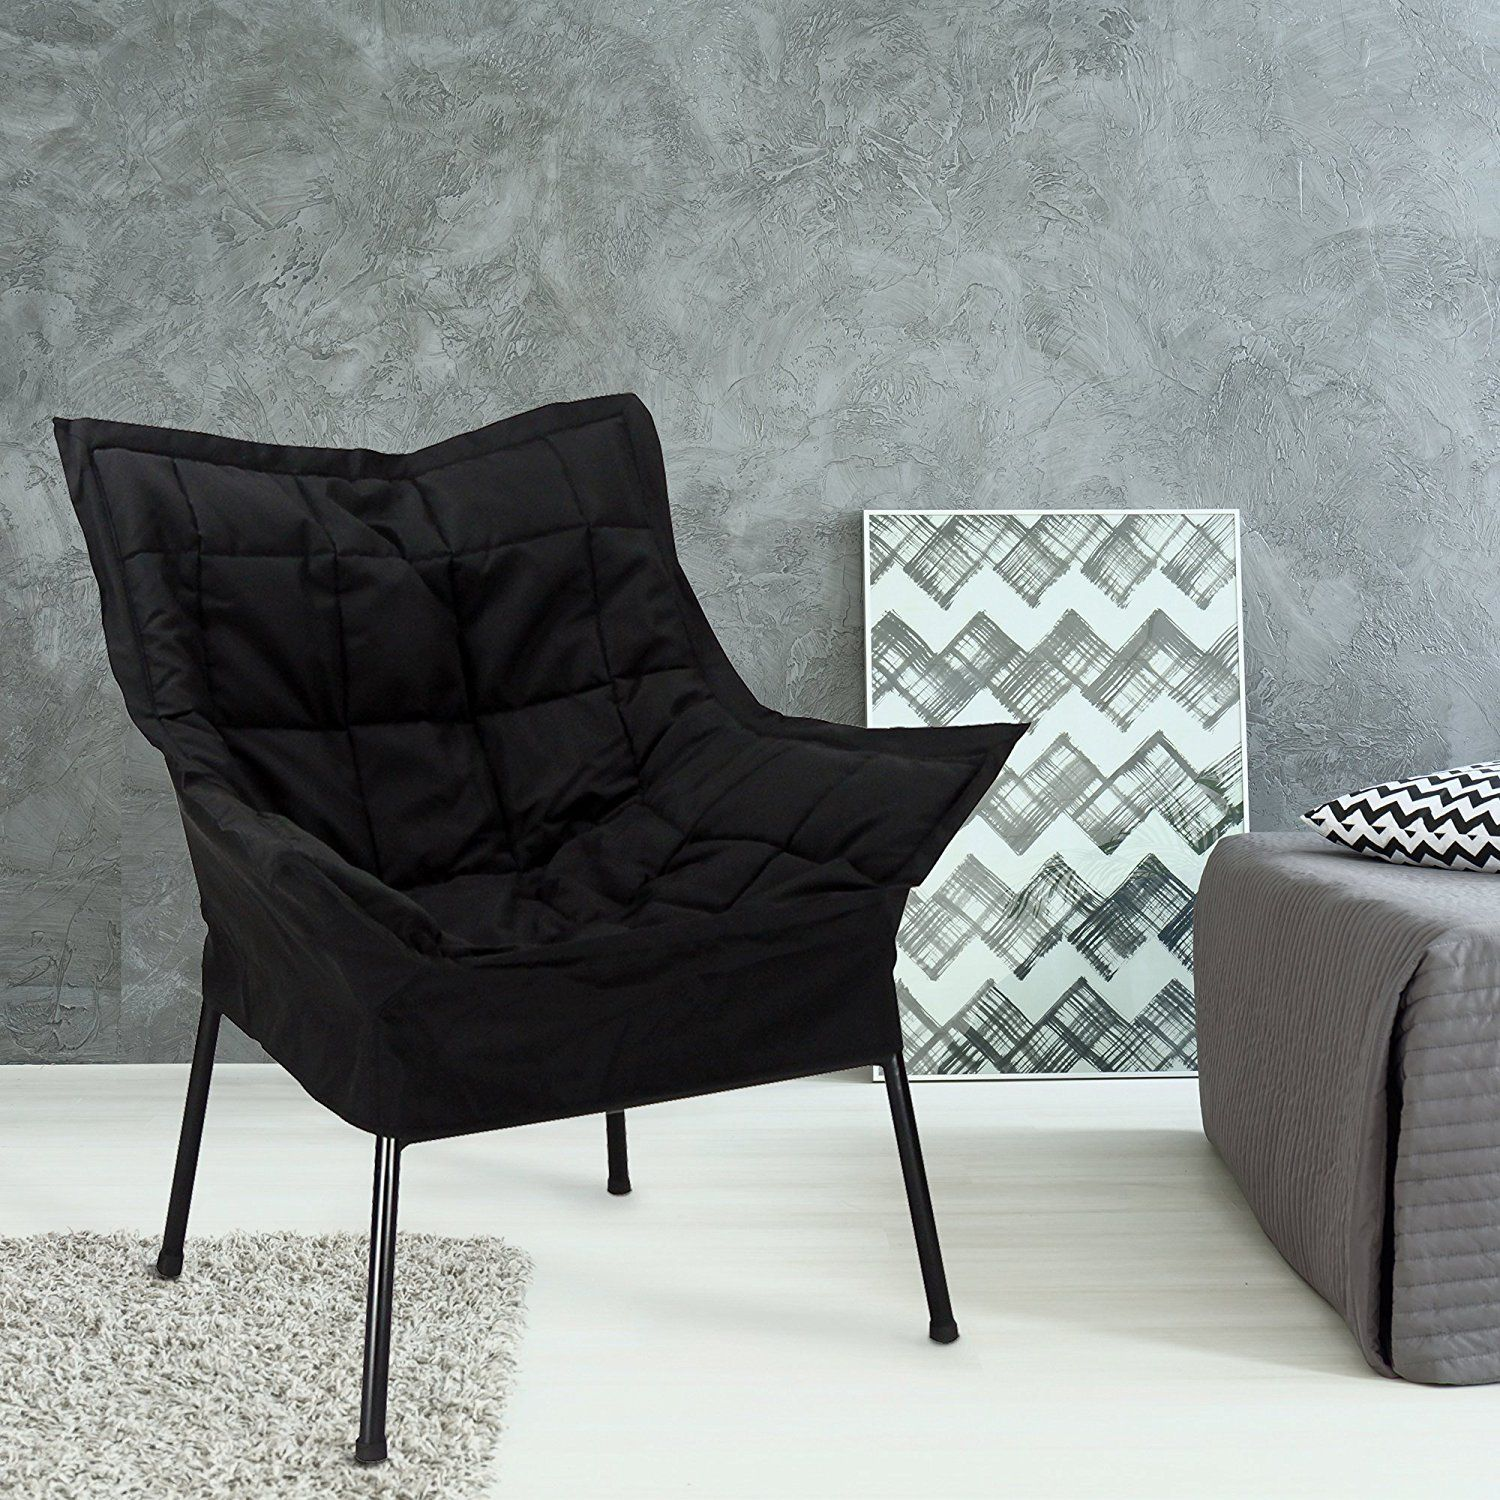 Cheap Accent Chairs Under 50 Chair Metal Chairs